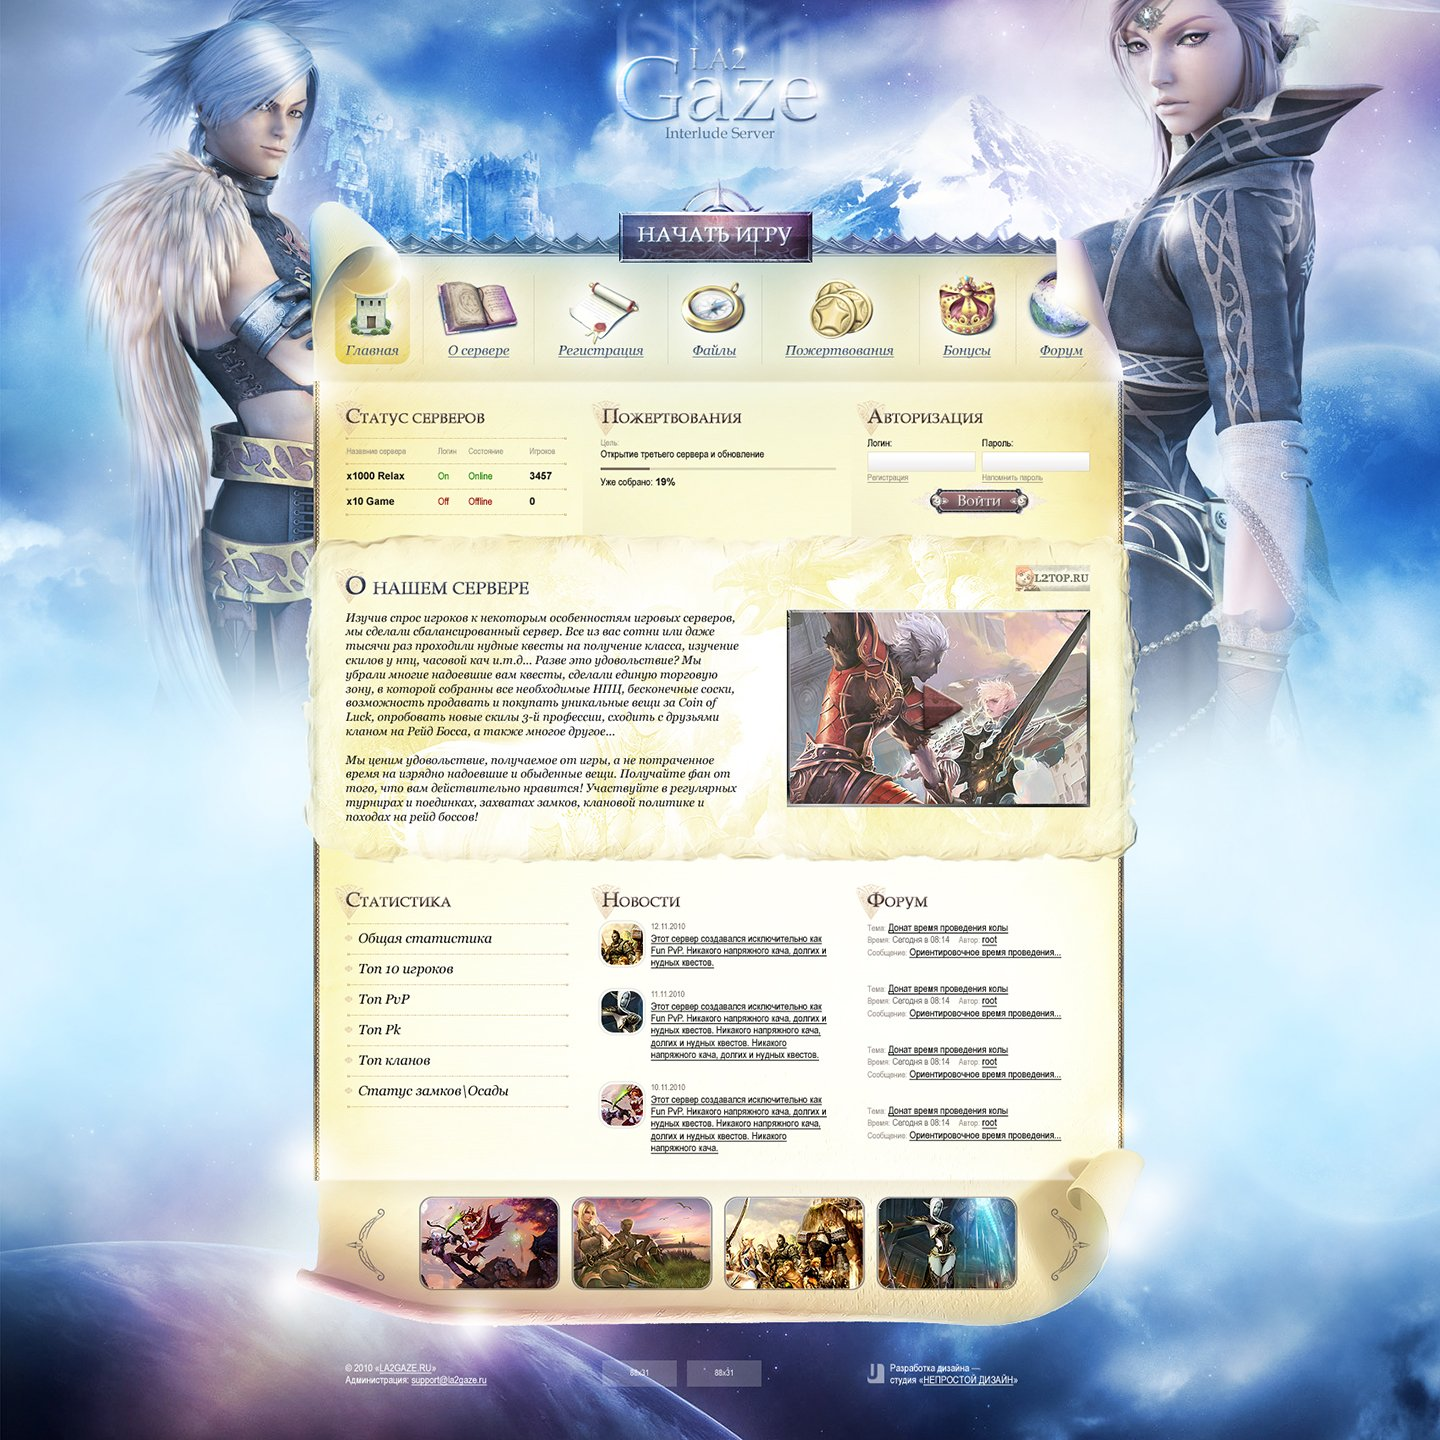 La2Gaze > Website design for Lineage 2 private server. Main page